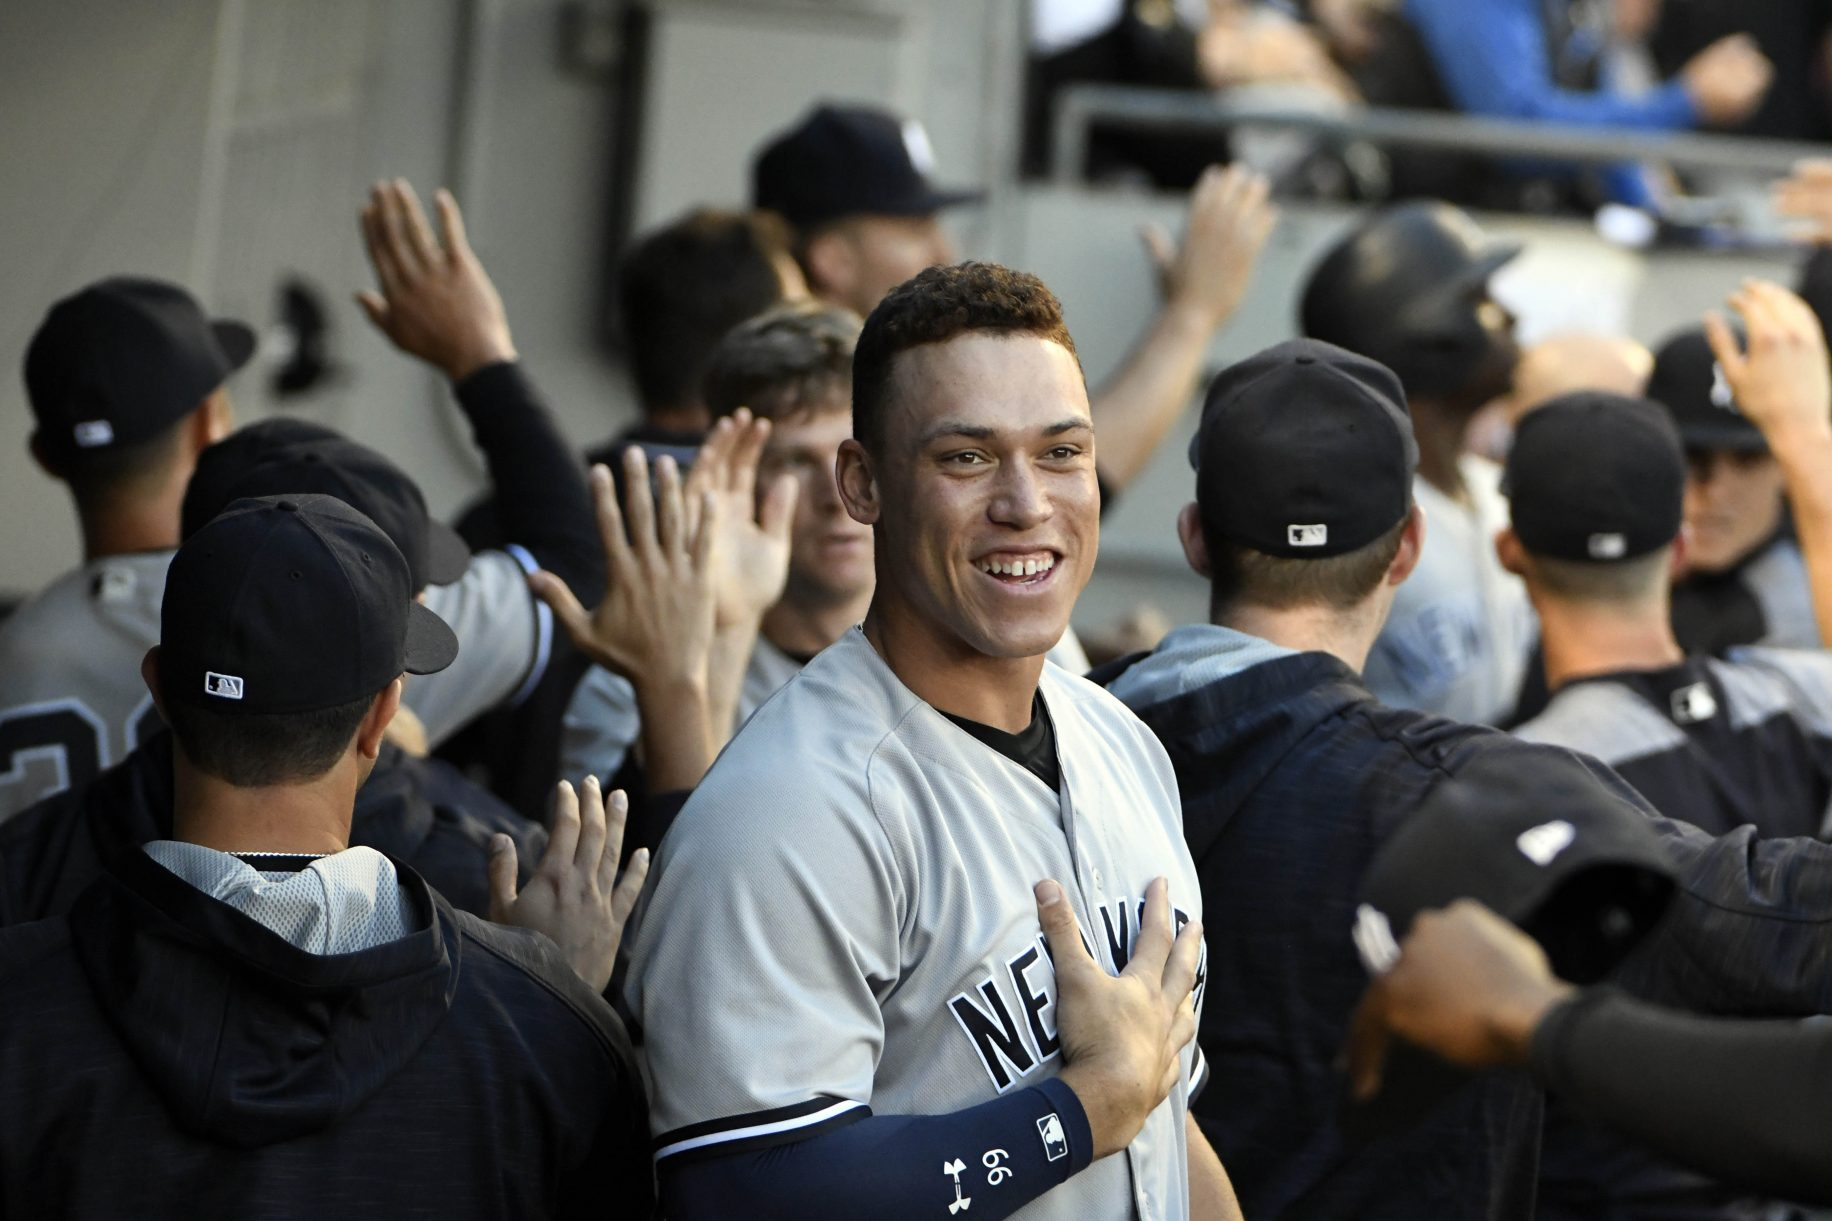 New York Yankees: Aaron Judge Spotted ...